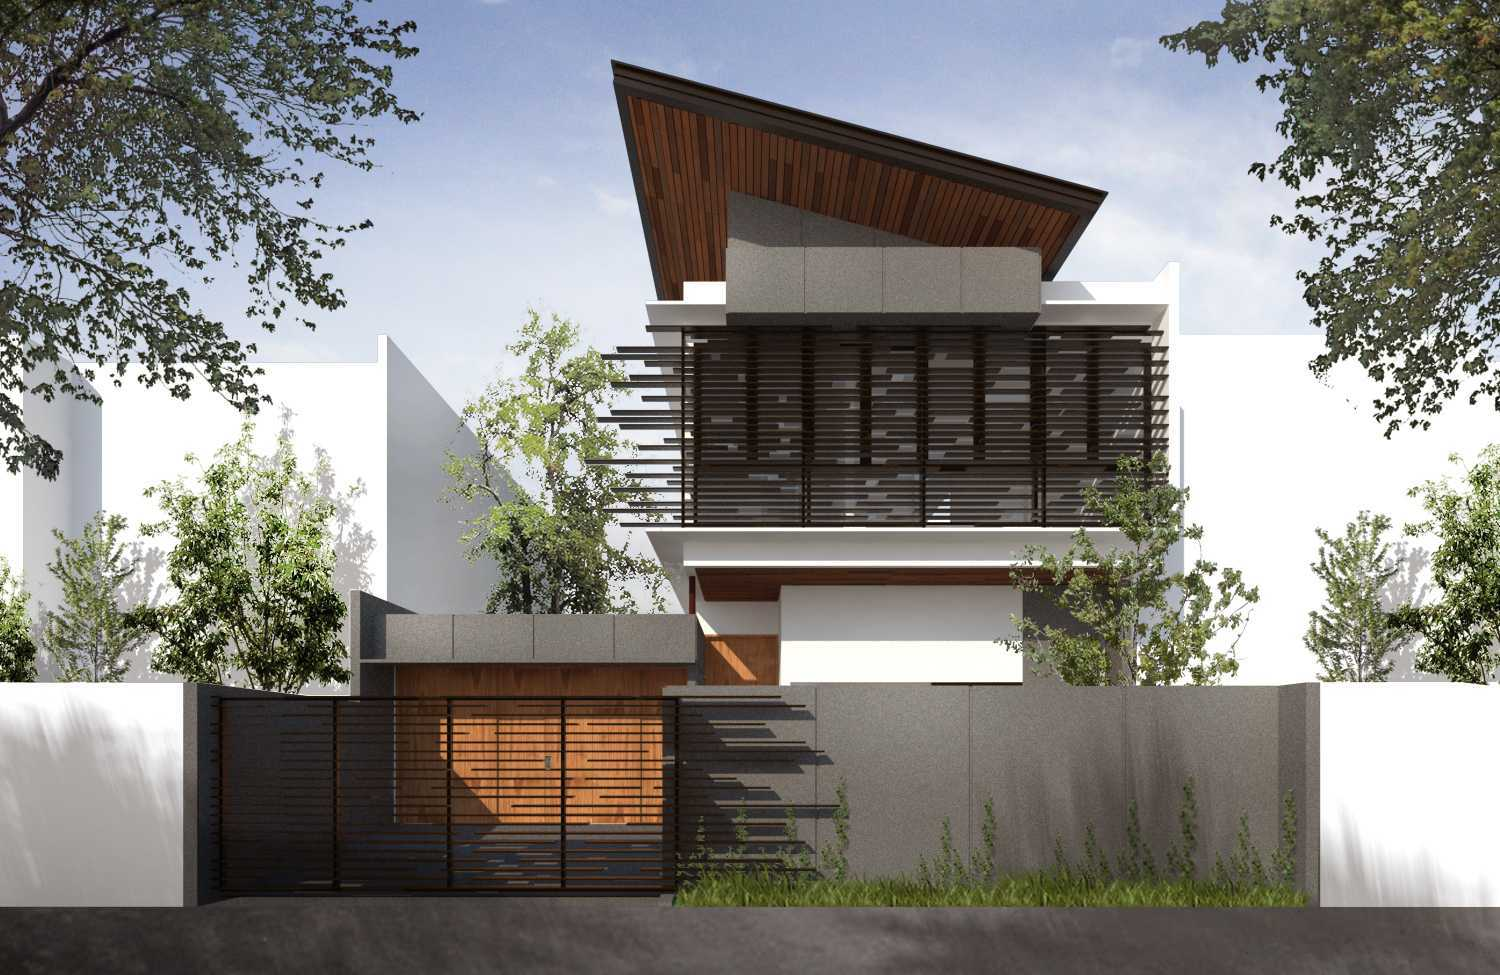 Jasa Design and Build MahaStudio & Partner di Bekasi